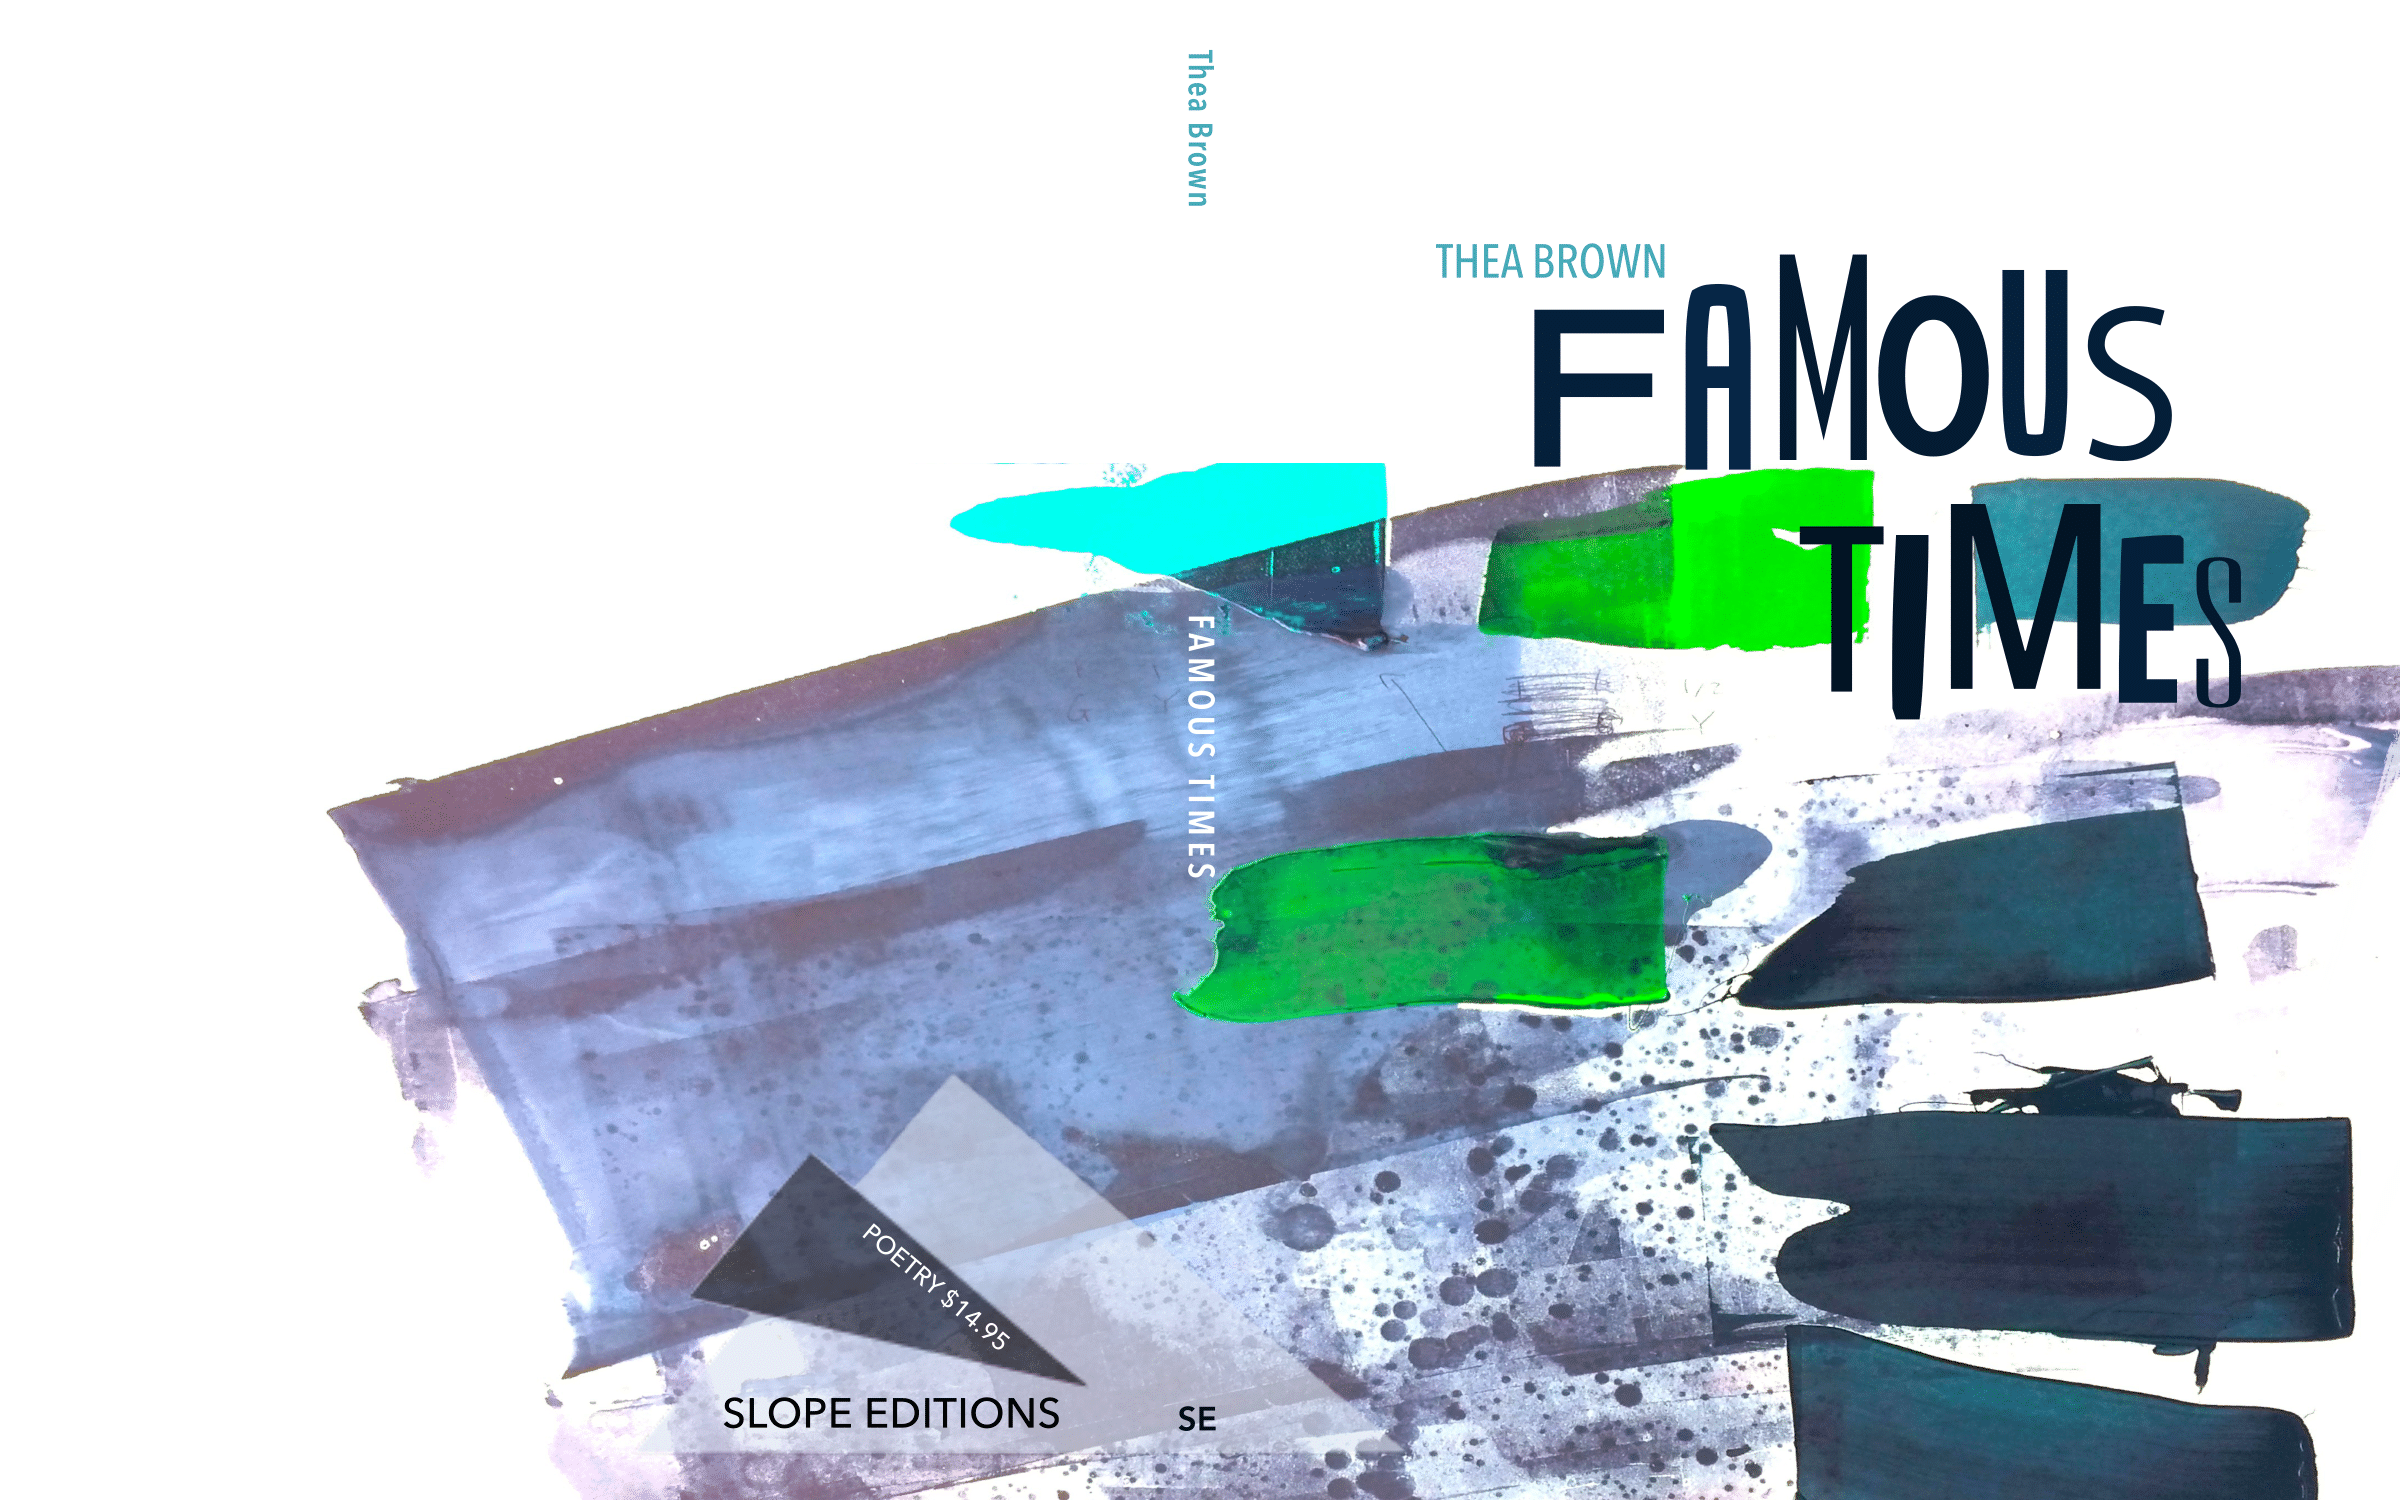 famous-times-cover